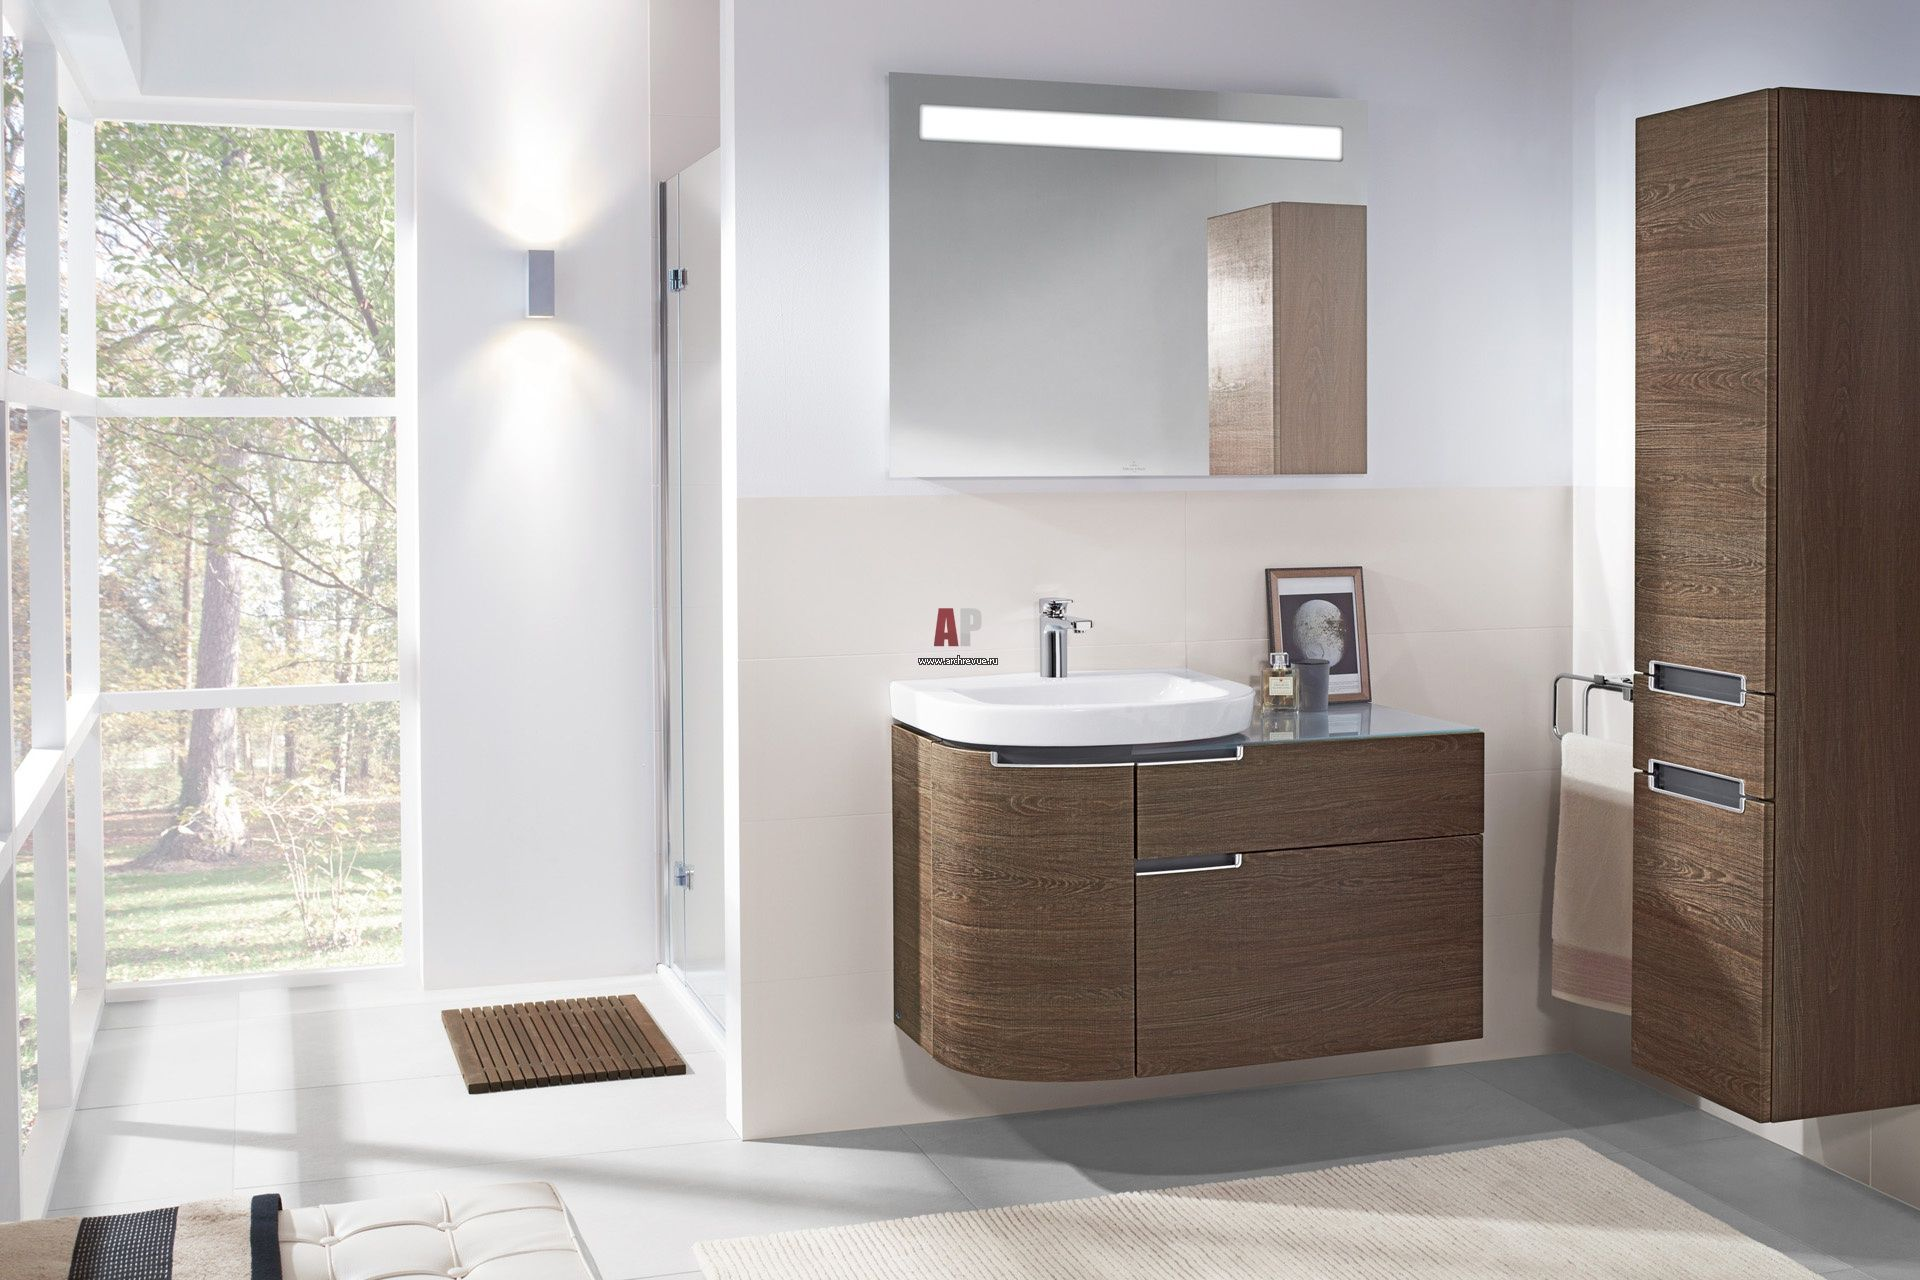 Villeroy and boch bathroom cabinets - Find This Pin And More On Villeroy Boch Furniture Colours